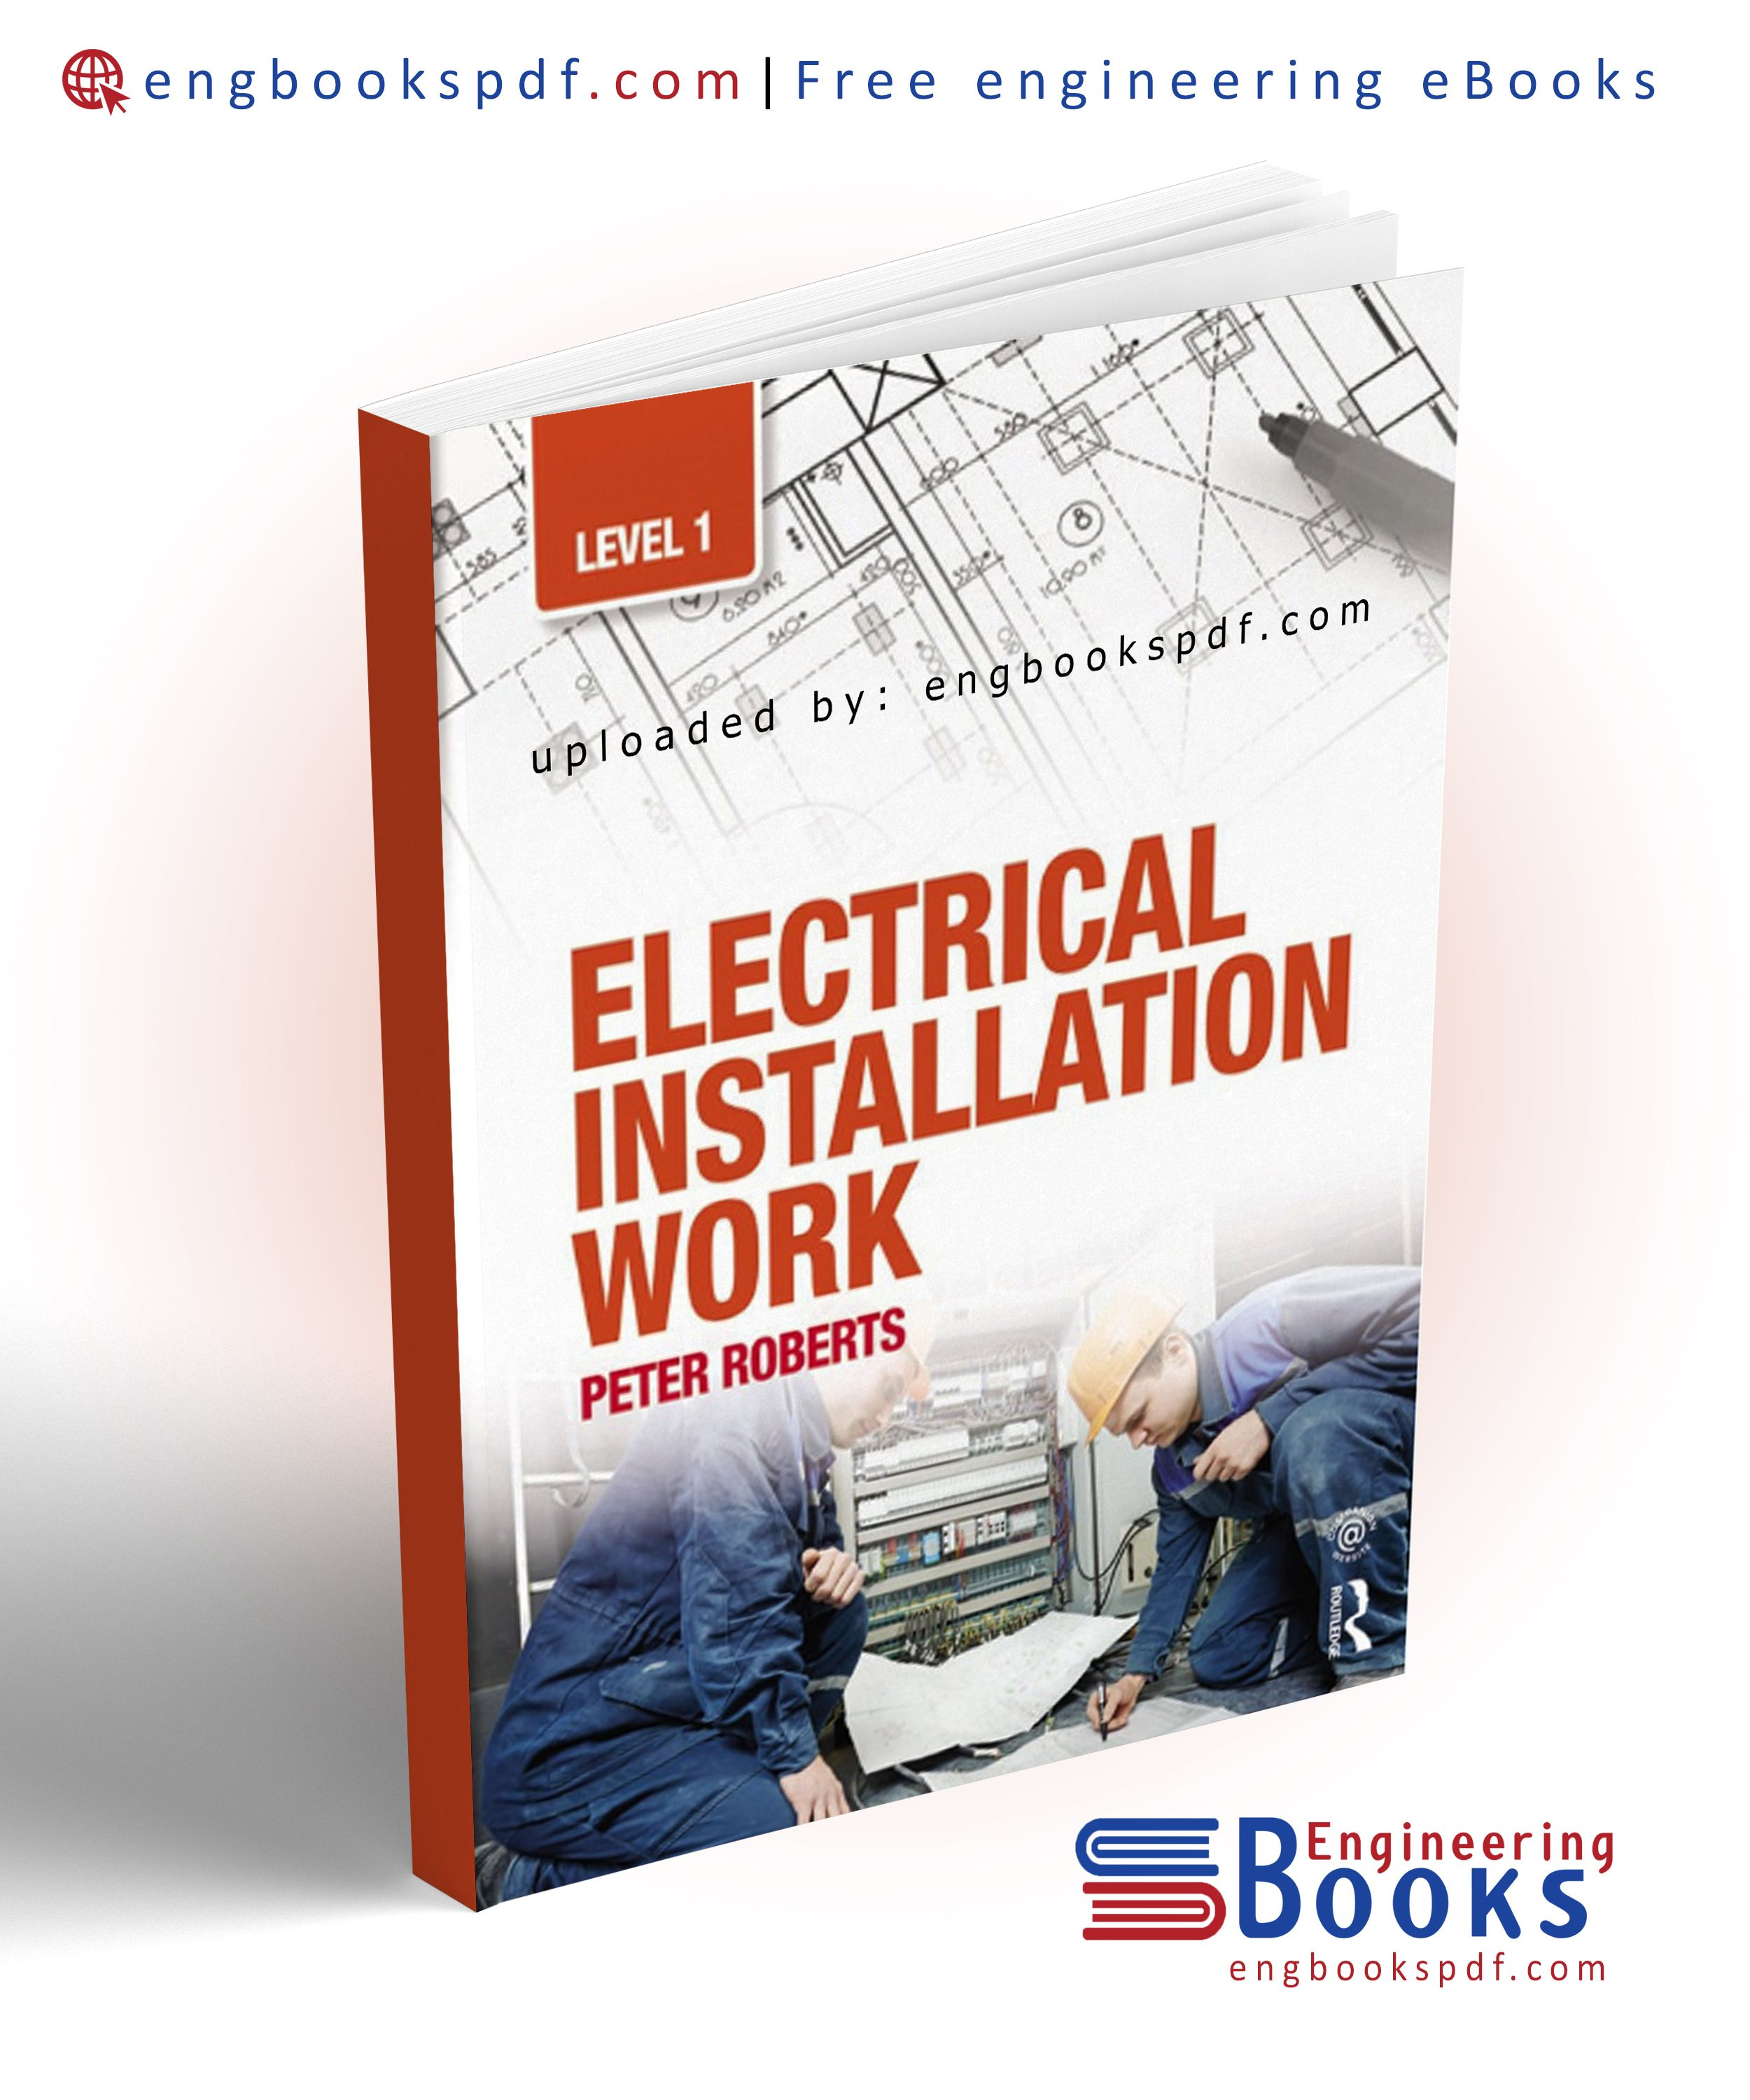 PDF of Electrical Installation Work Level 1 by Peter